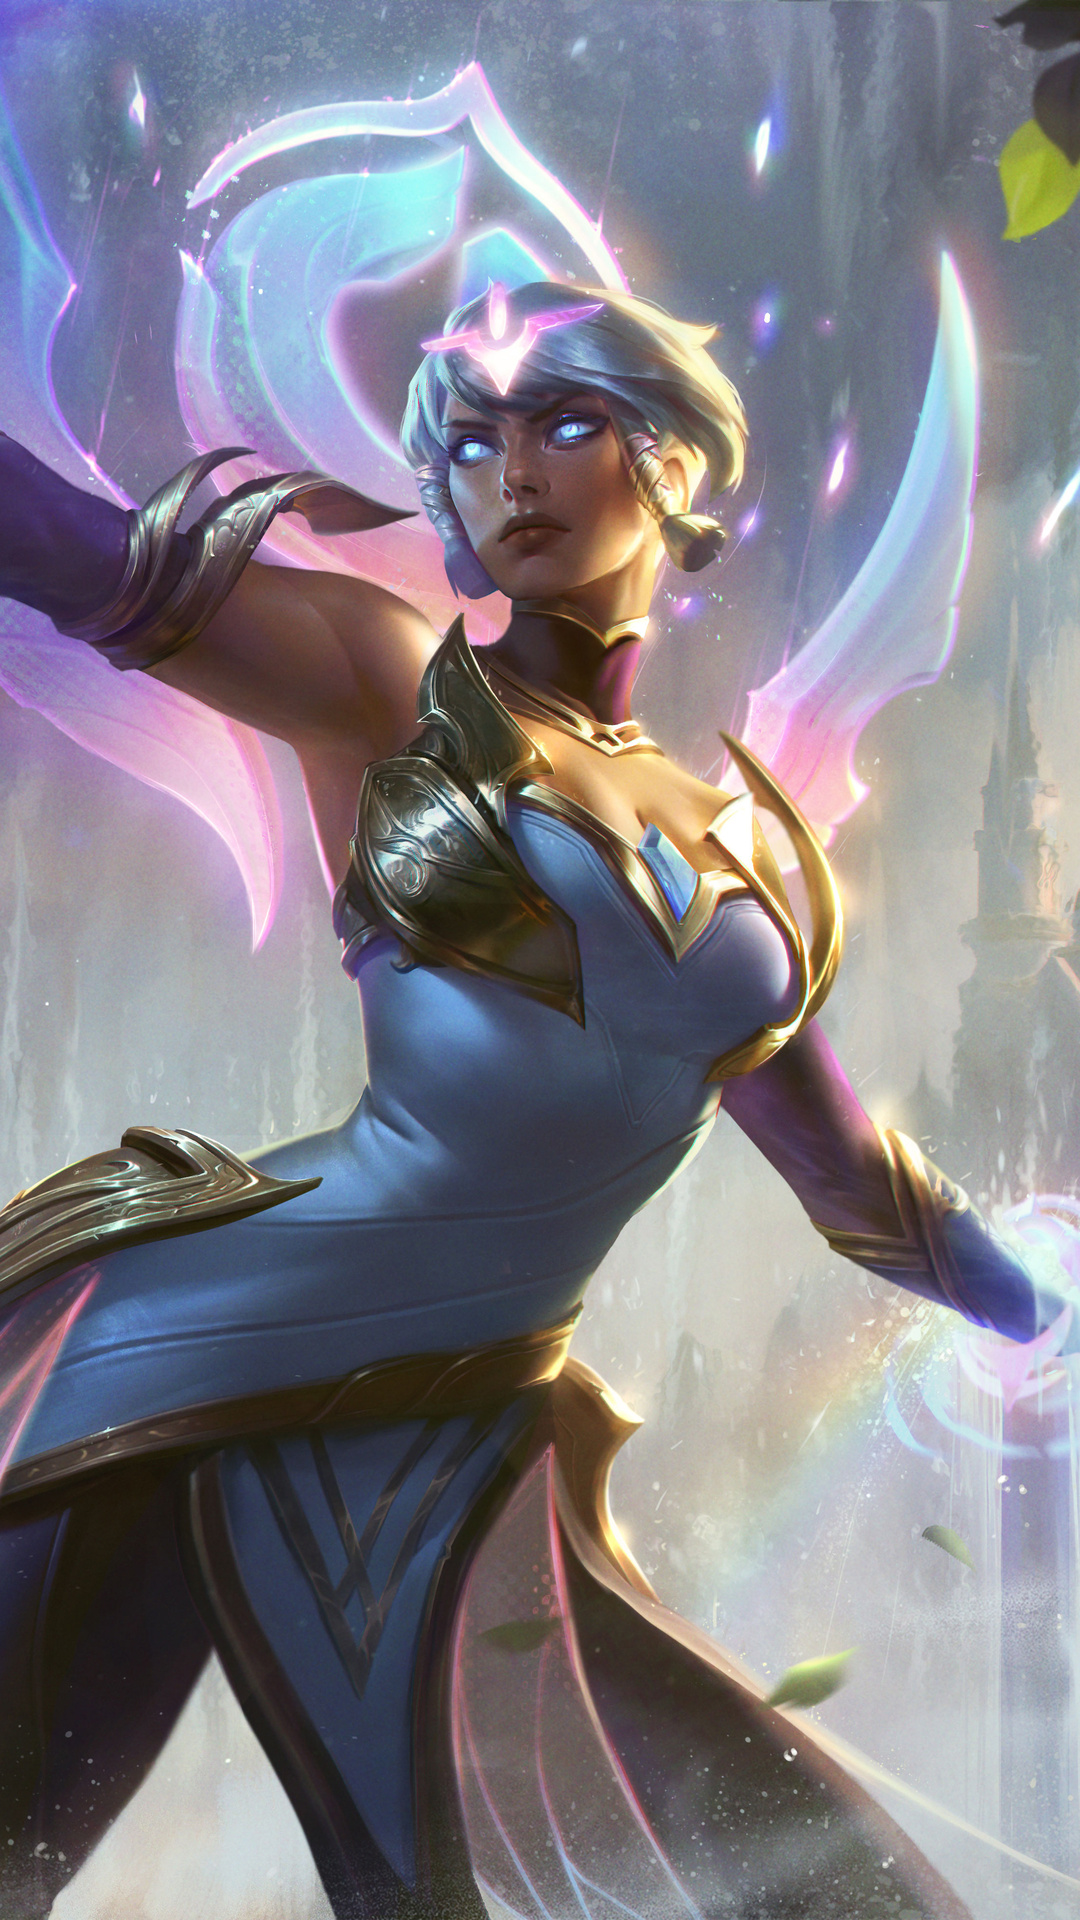 dawnbringer-karma-league-of-legends-8k-35.jpg